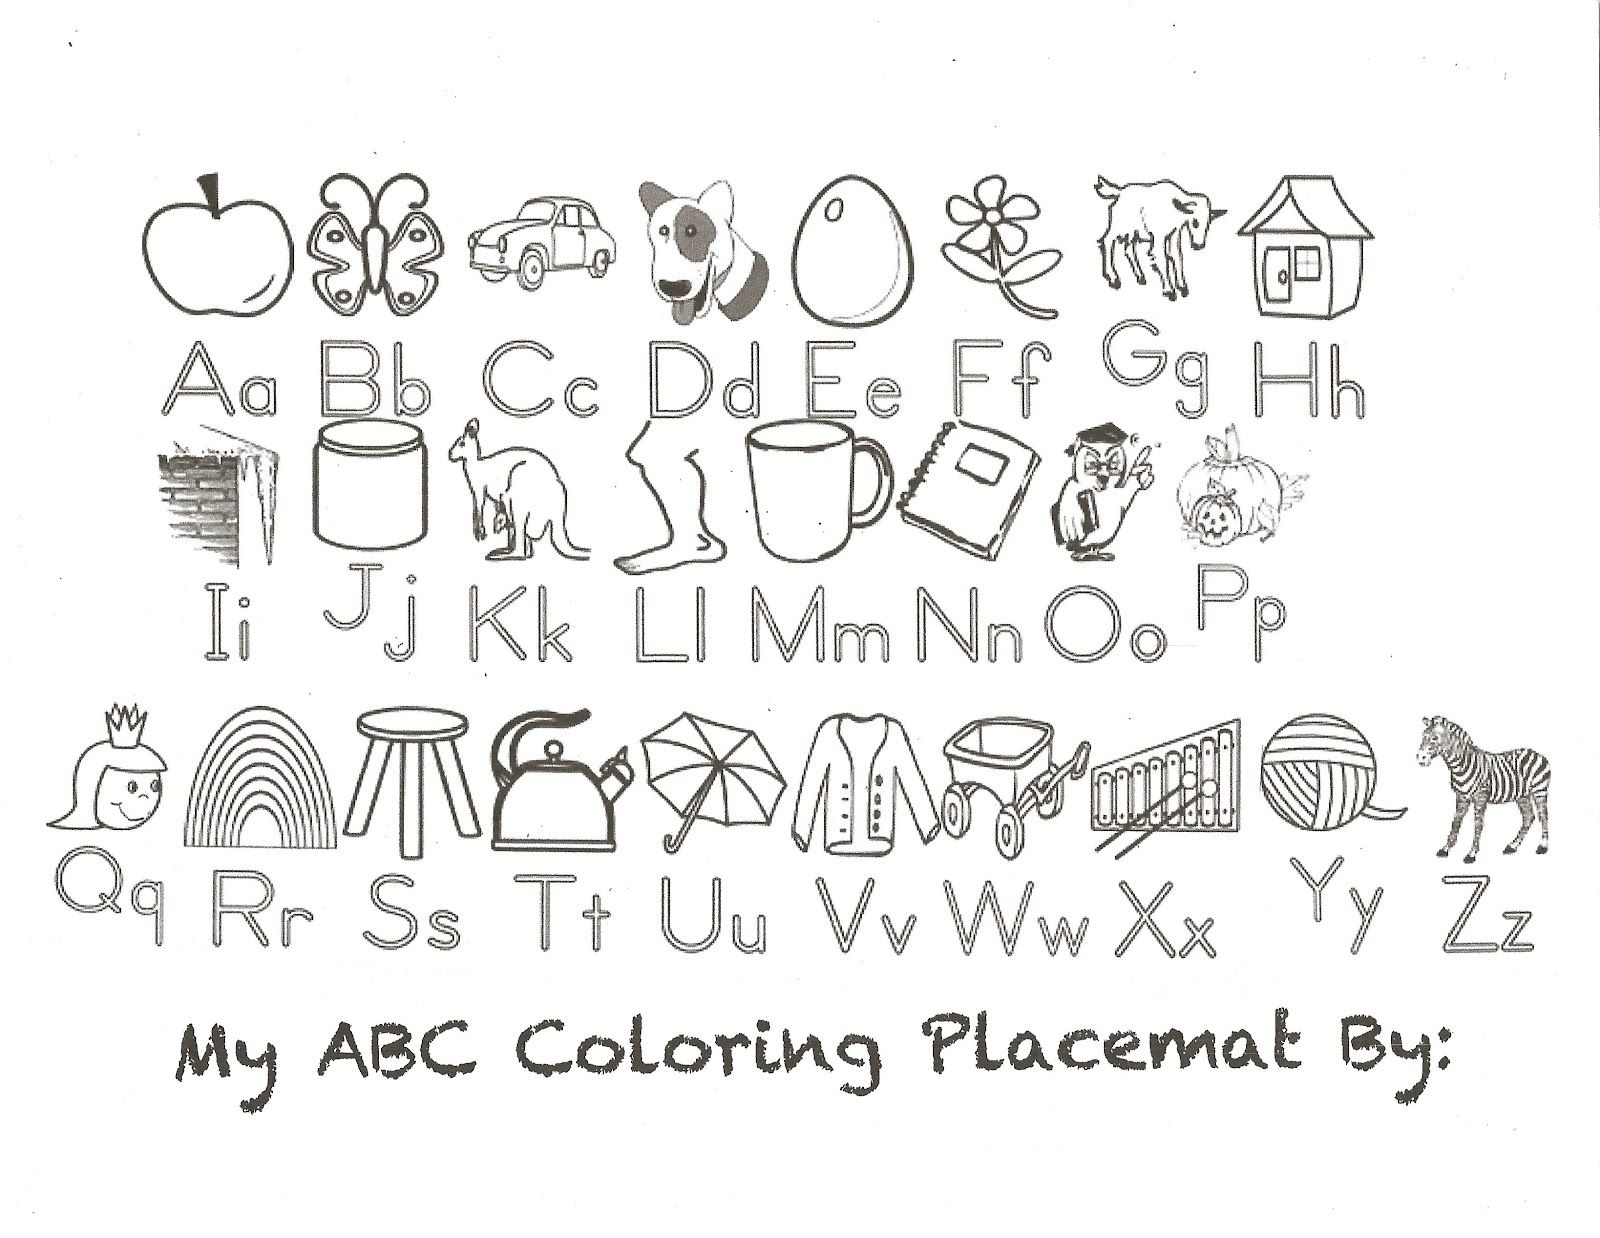 Halloween Alphabet Coloring Pages Download Printable - oukas.info